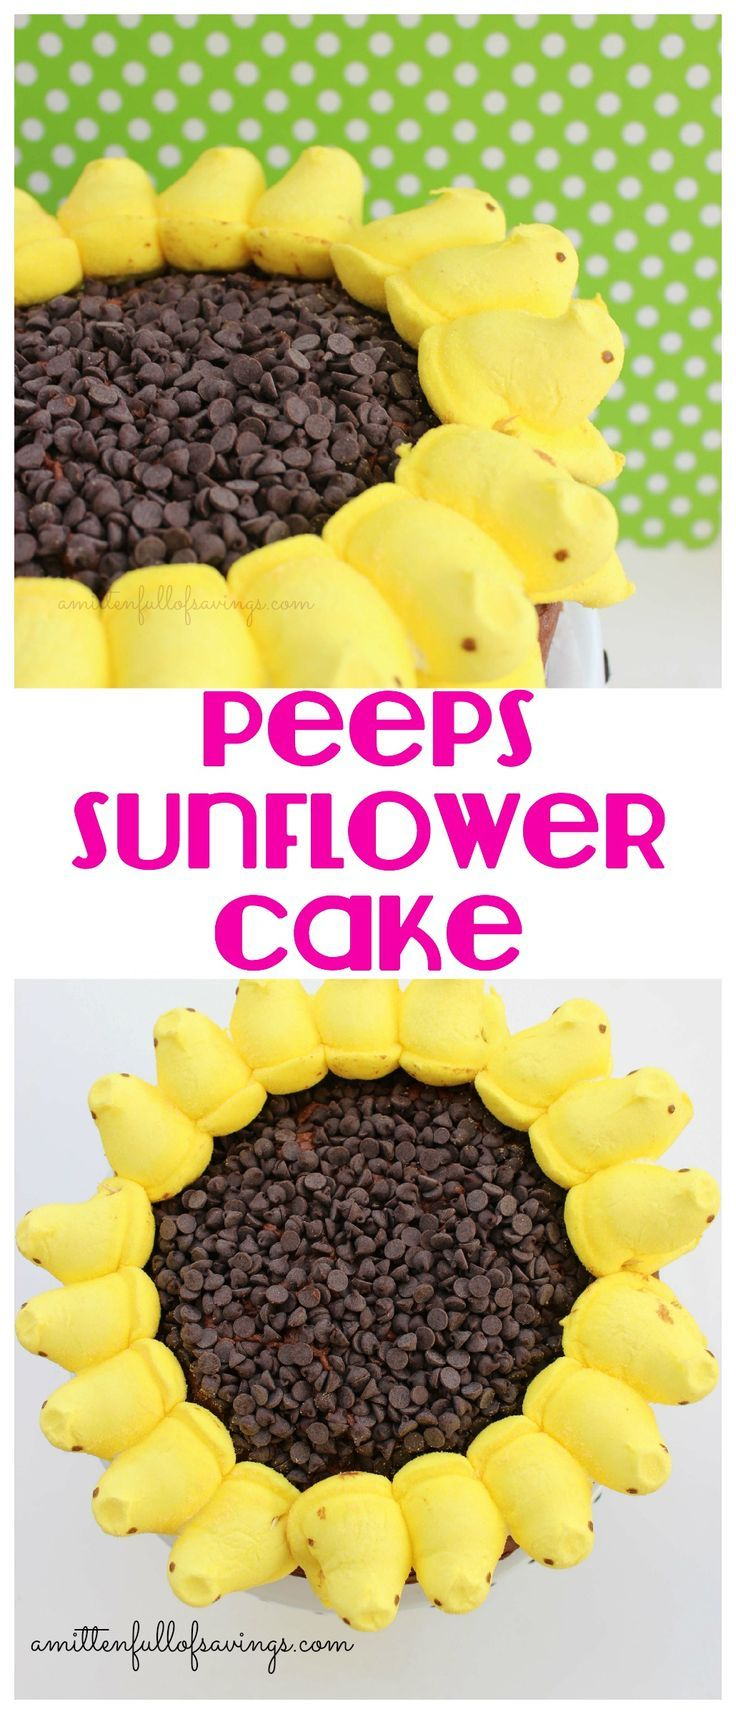 Get your Peep on with this fun, easy Easter treat! Learn how to make your own Peeps Sunflower Cake!